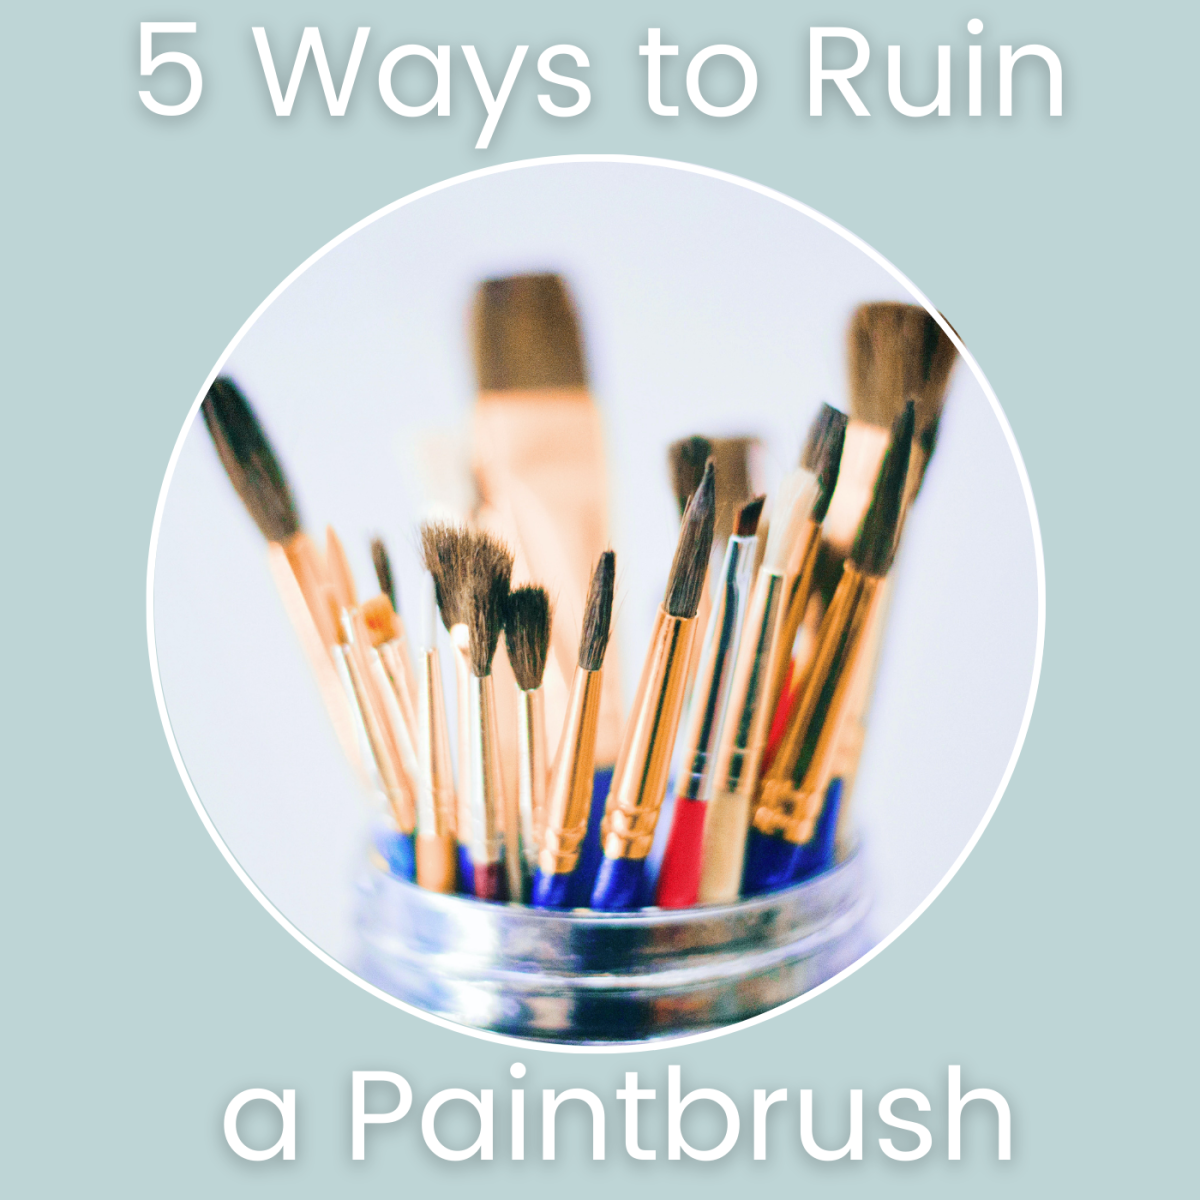 Some common mistakes can quickly ruin paintbrushes. How you clean and store paintbrushes have a huge impact on their lifespan and how they stay in shape. Great tips for beginner artists.